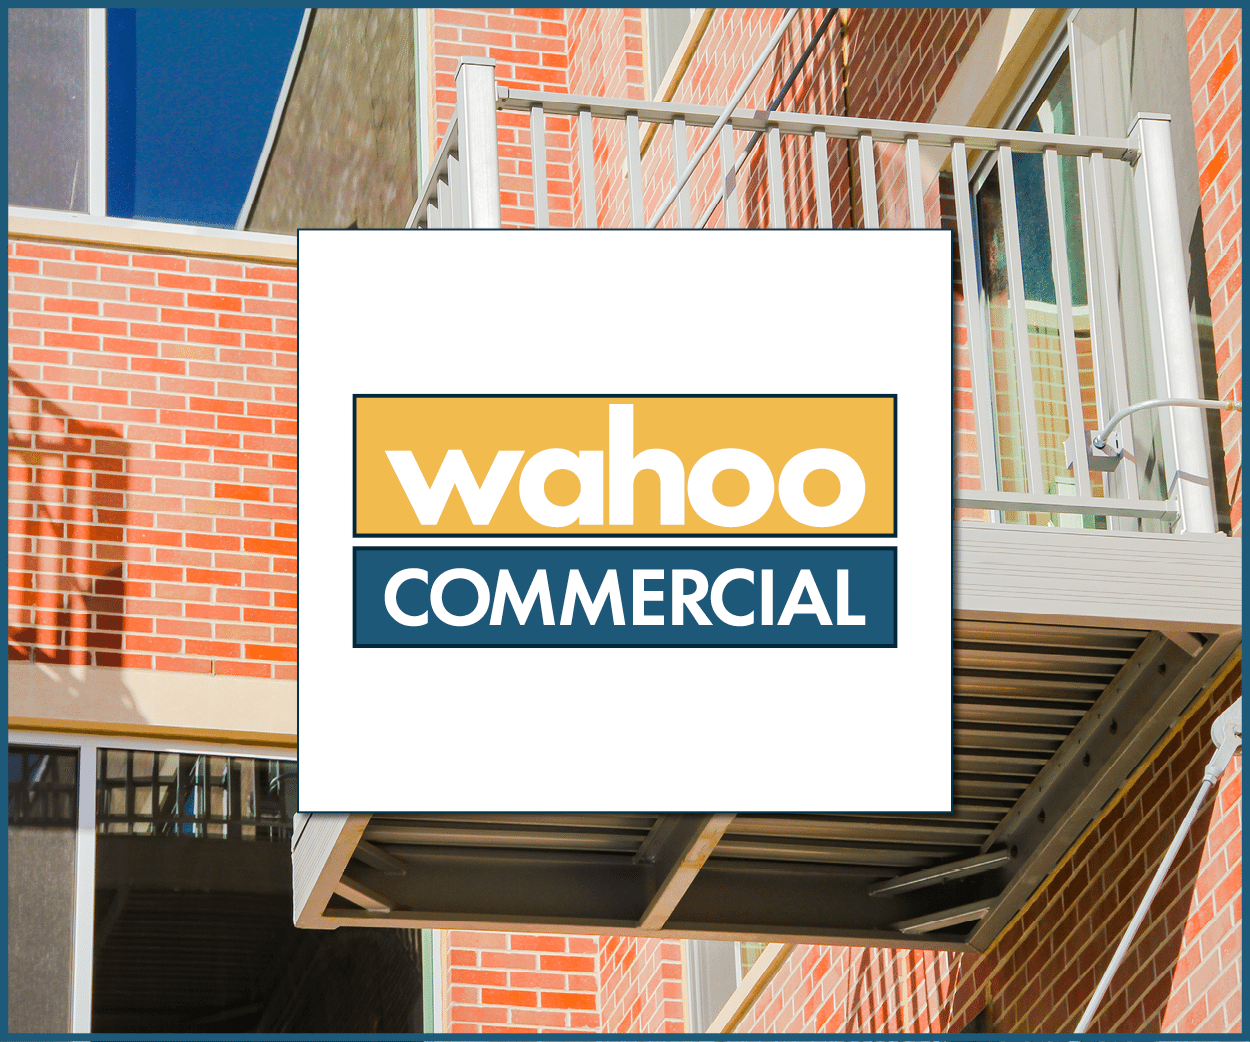 Wahoo commercial - commercial aluminum decking and balcony systems